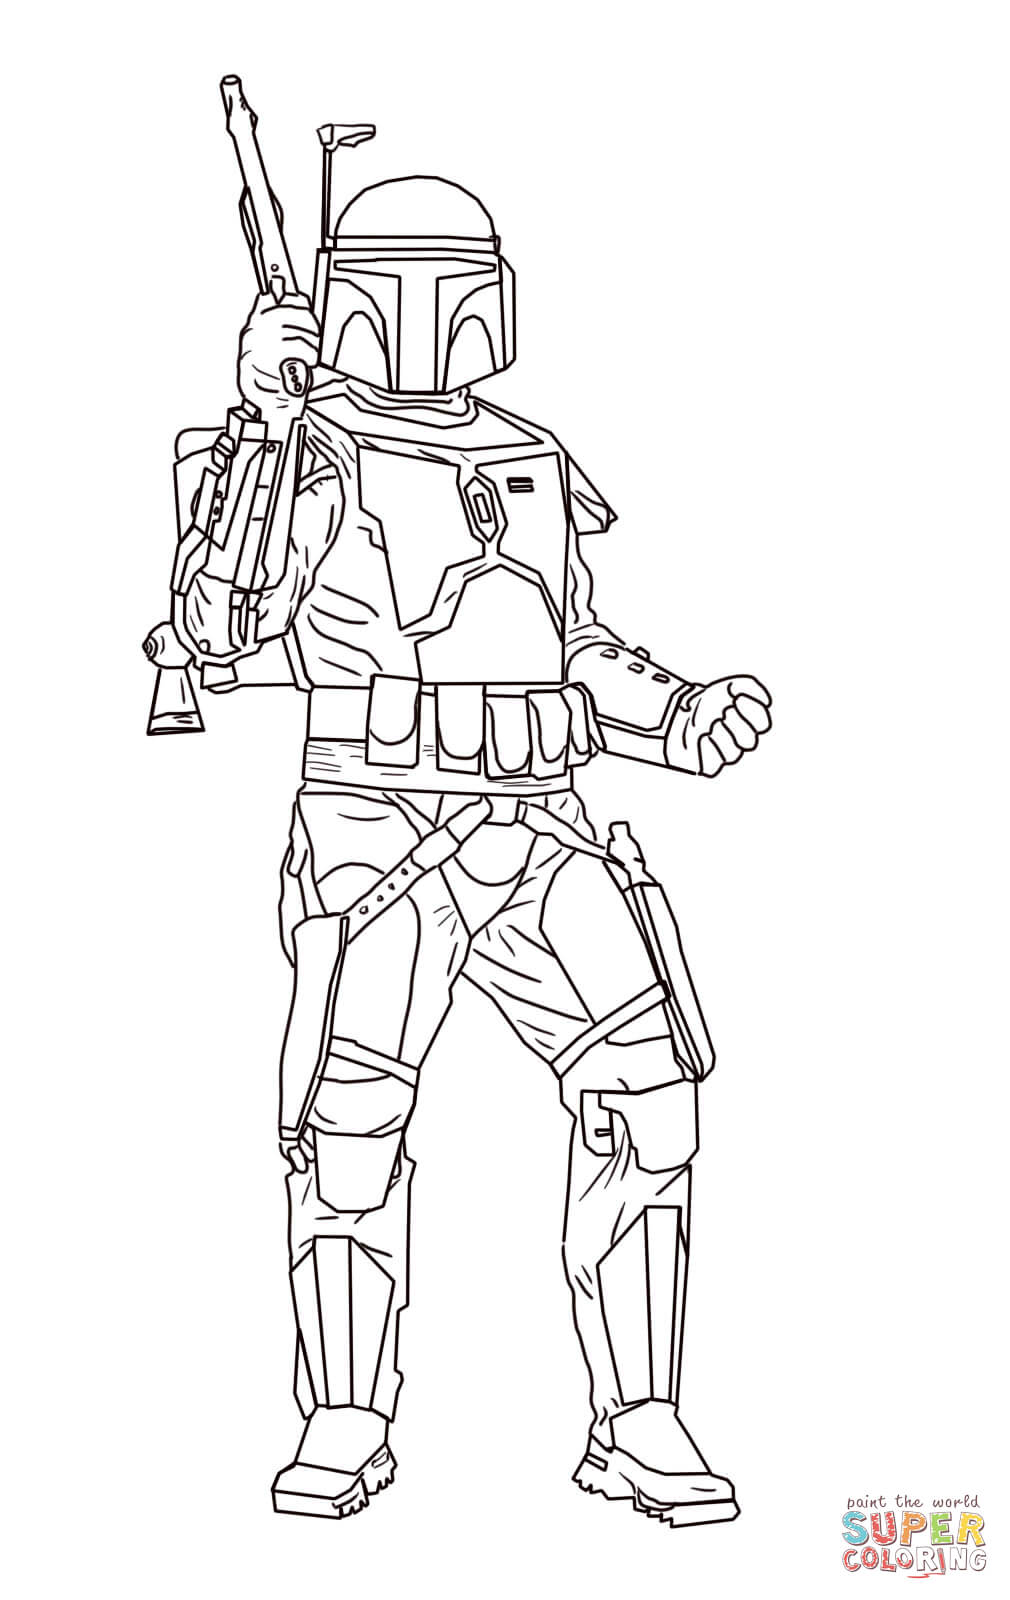 Boba Fett Drawing at GetDrawings.com | Free for personal use Boba ...